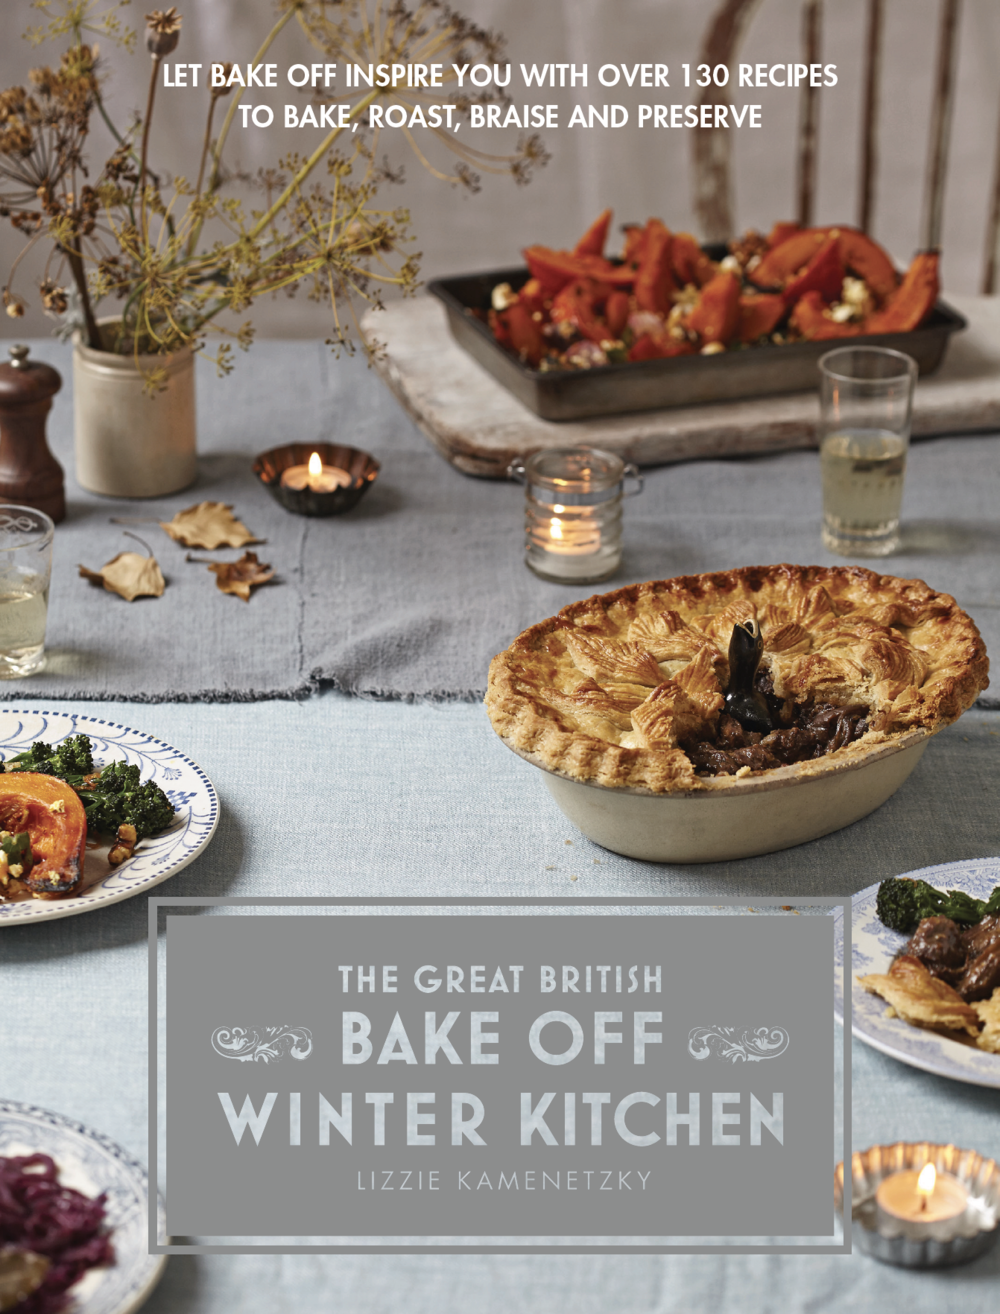 WINTER KITCHEN